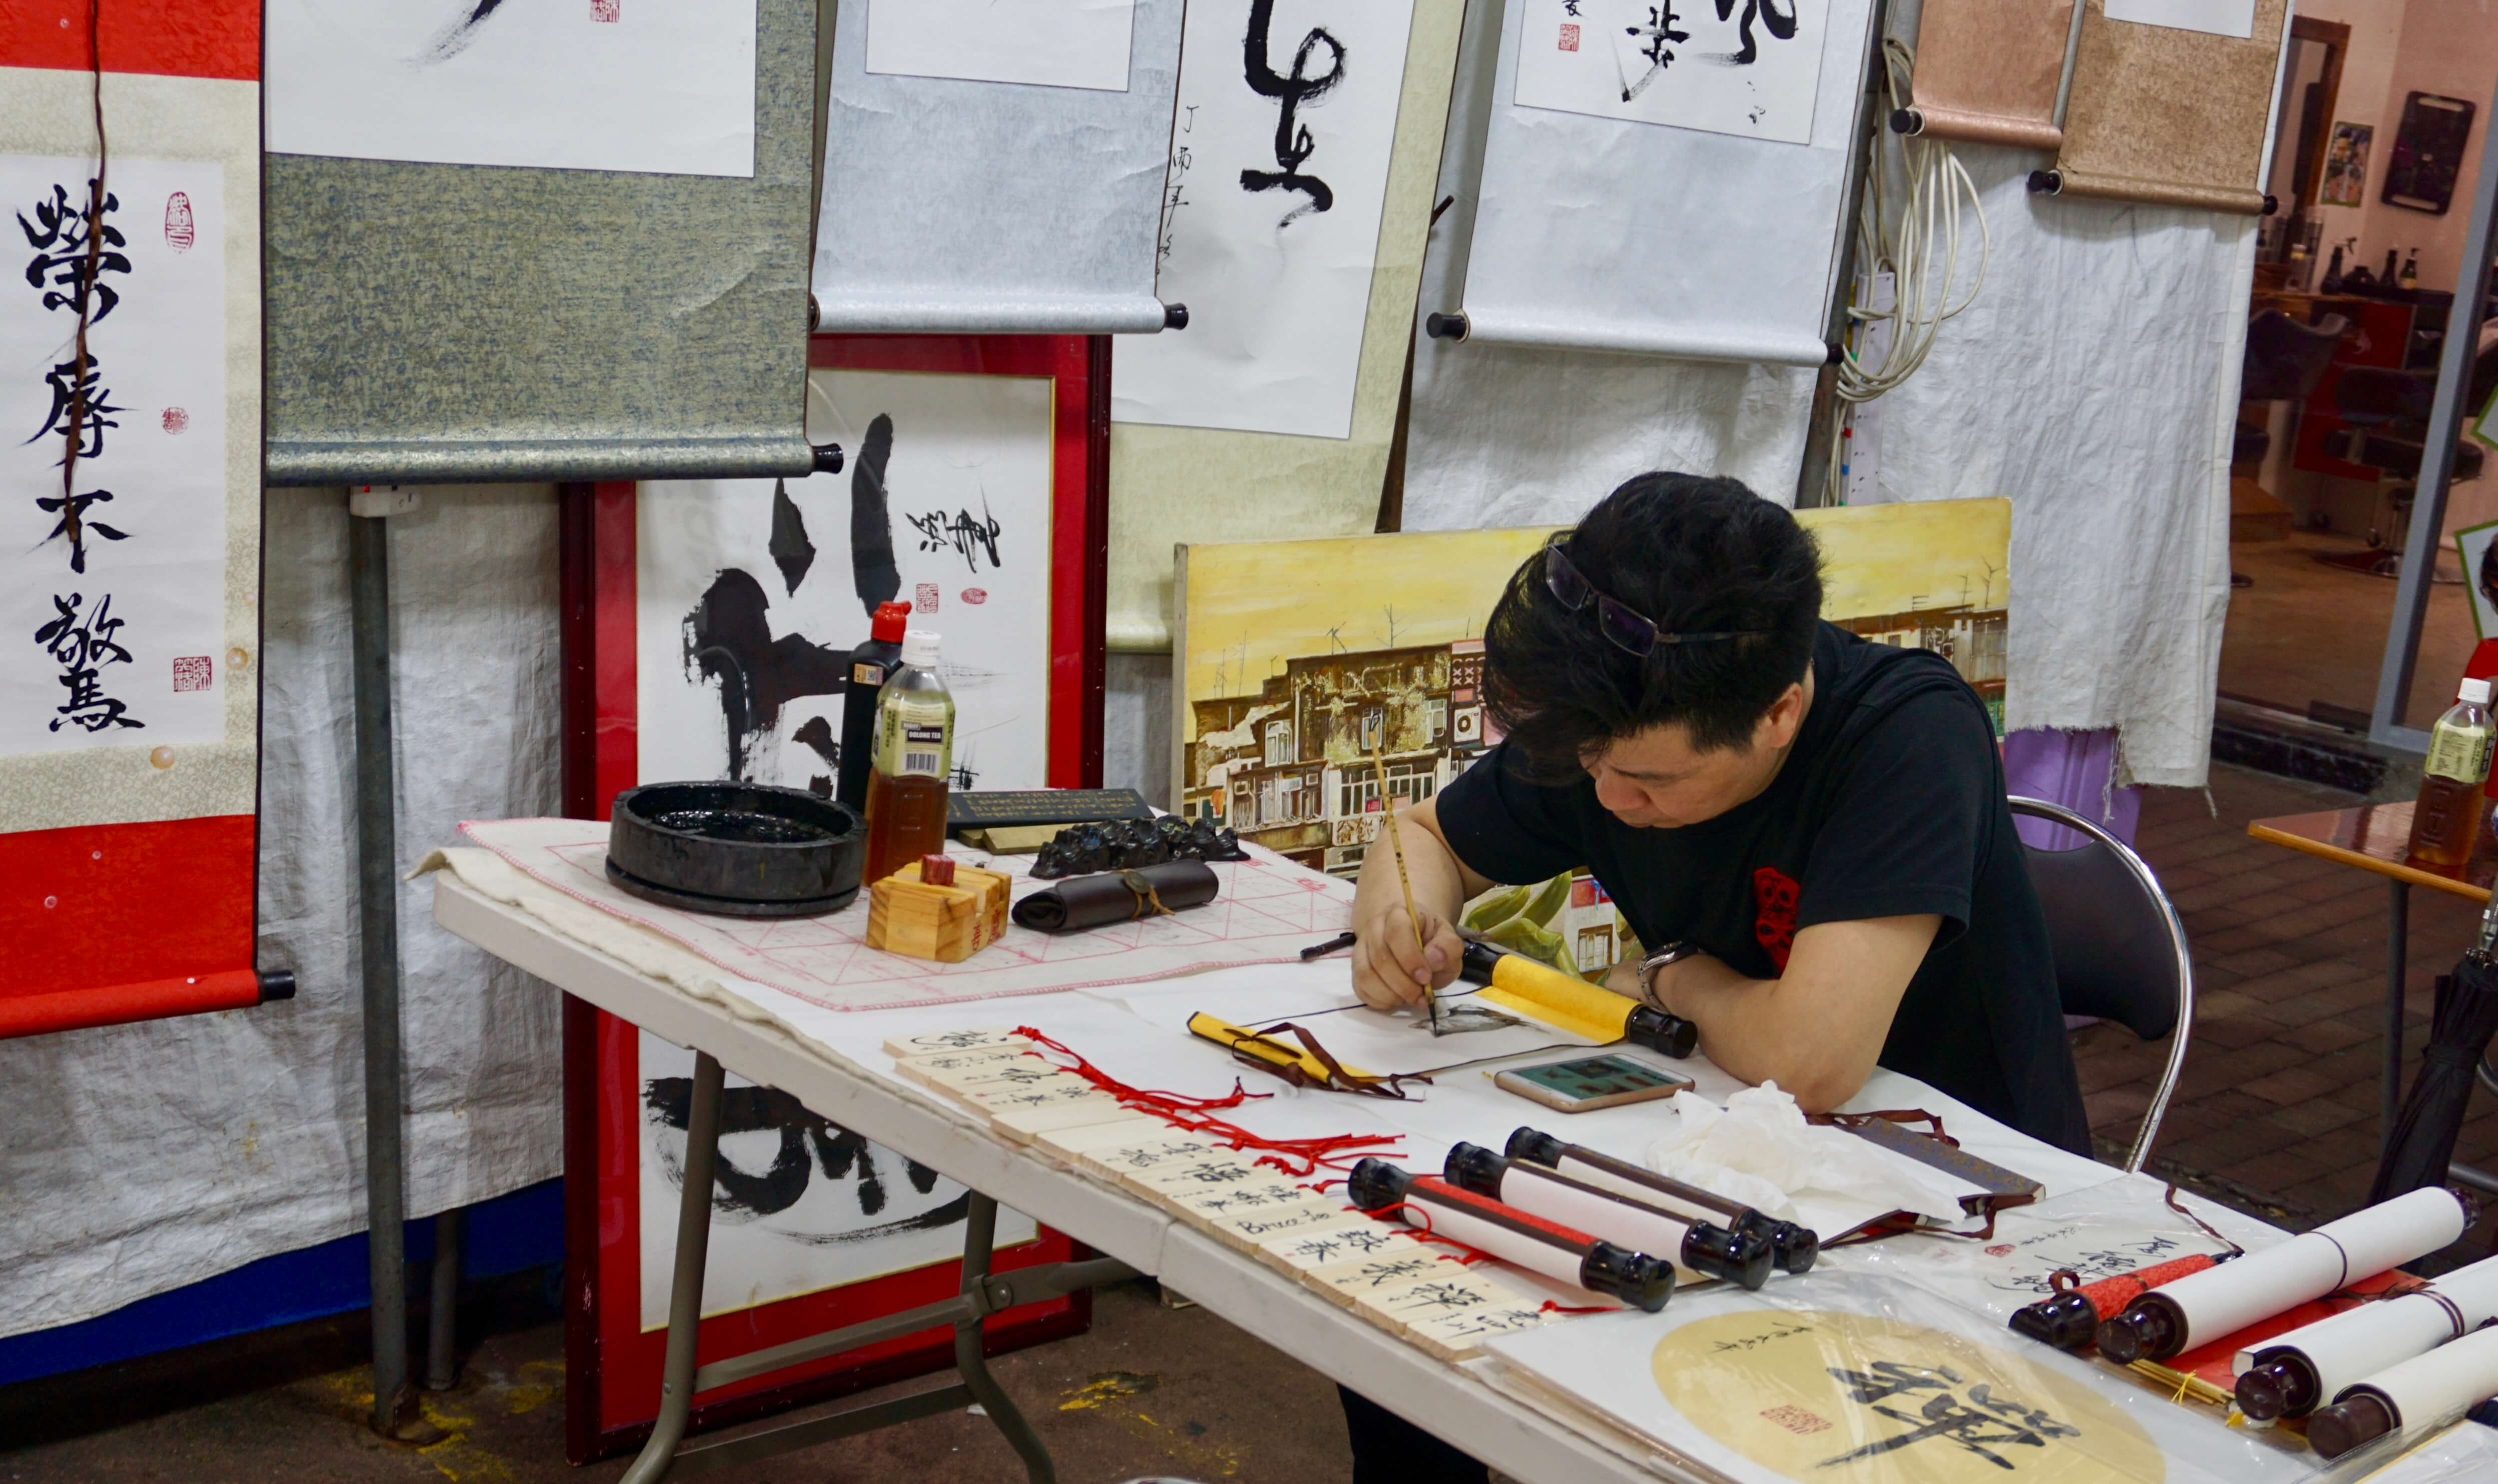 A calligrapher at the Temple Street Market in Hong Kong